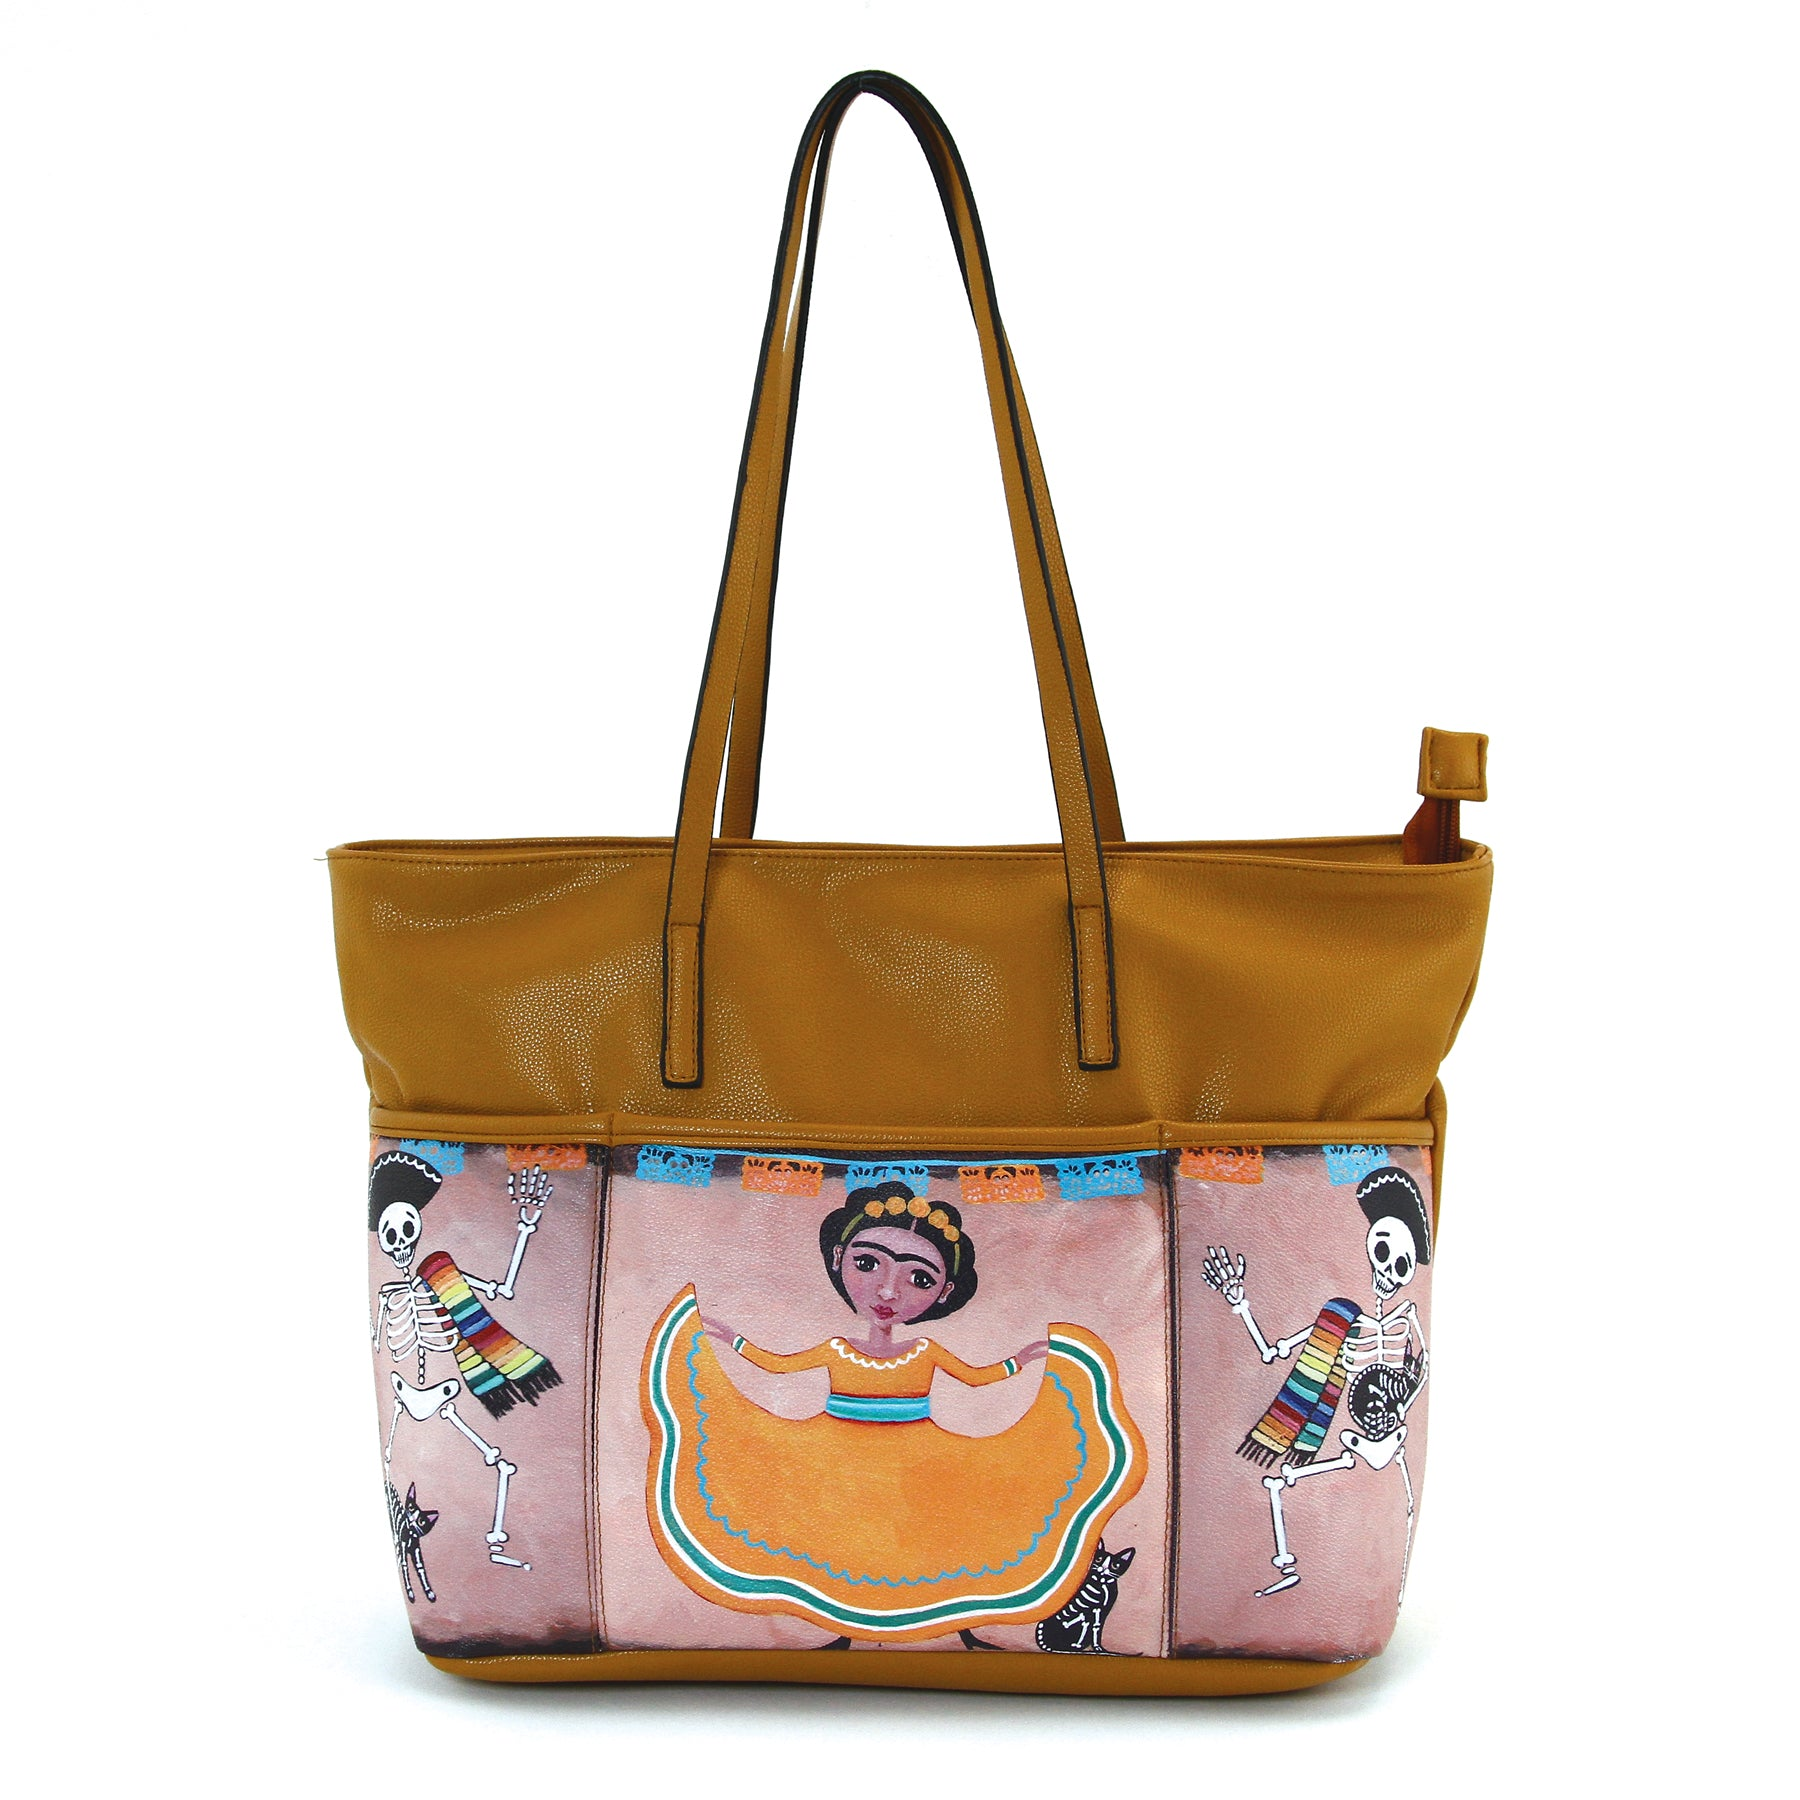 Three Pockets Unibrow Girl and Mariachi Skeleton Tote Bag in Vinyl Material front view